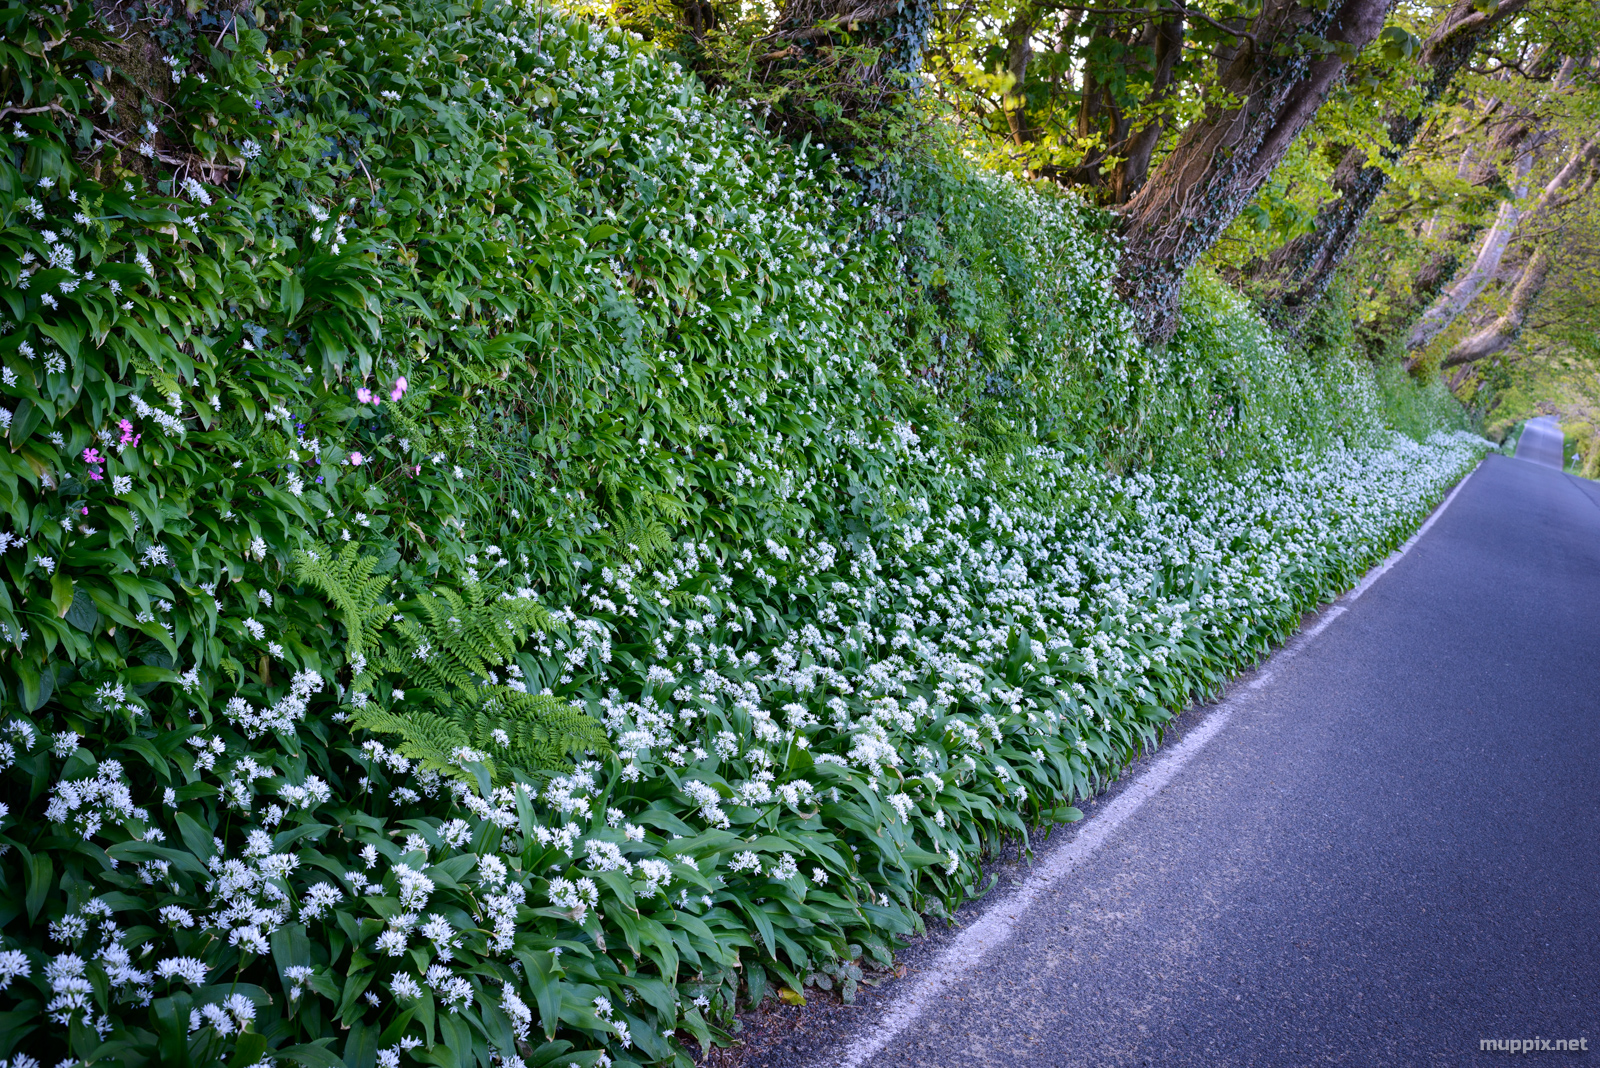 Photo of a country road verge covered in wild garlic